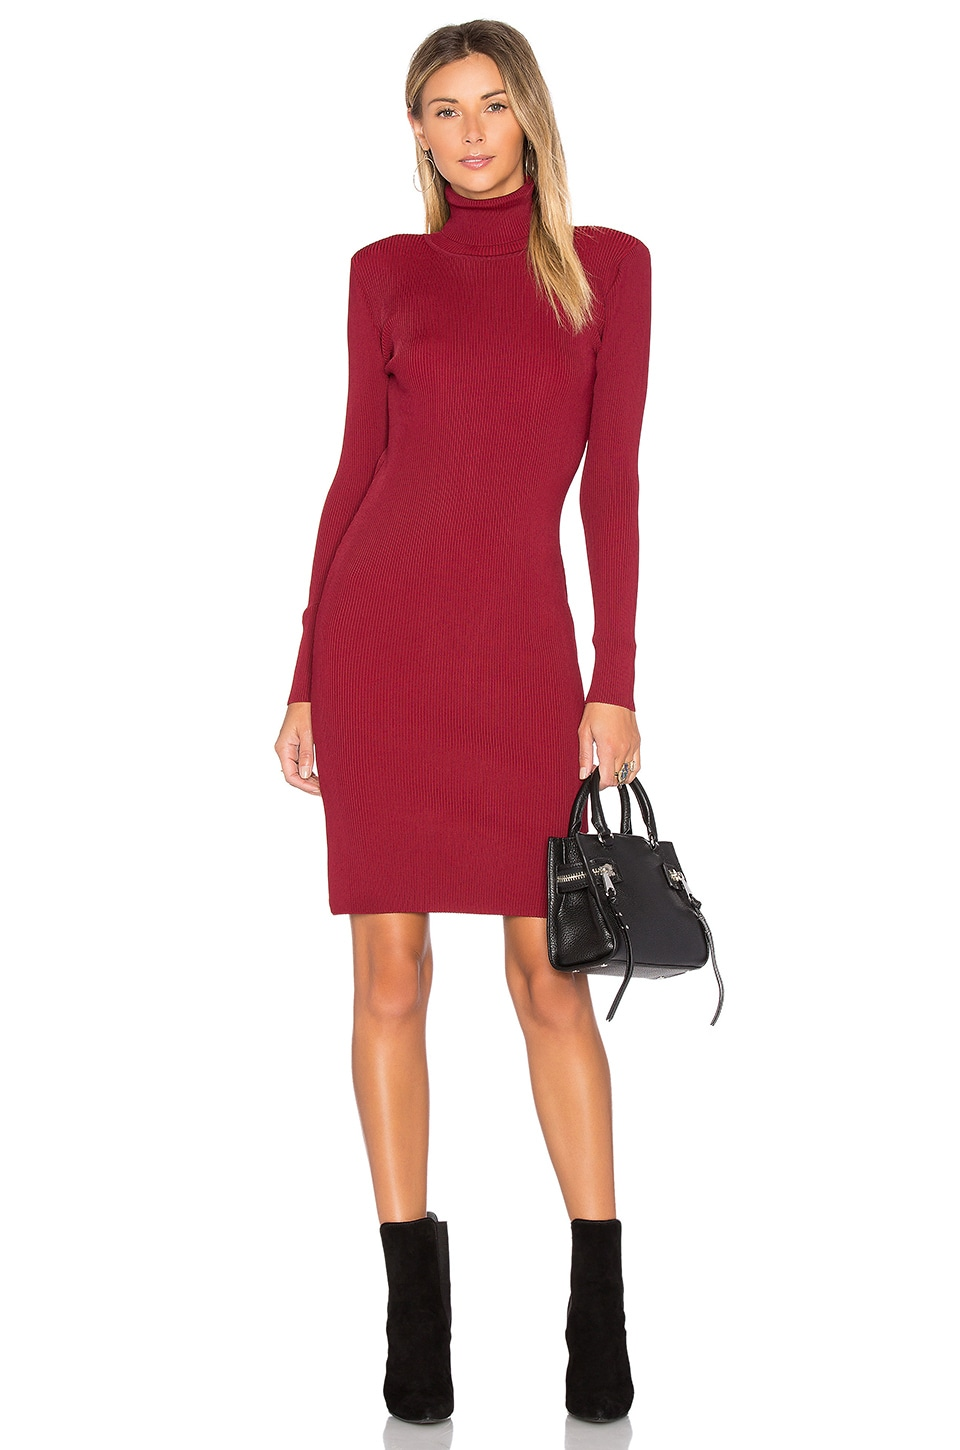 EGREY Turtleneck Sweater Dress in Wine